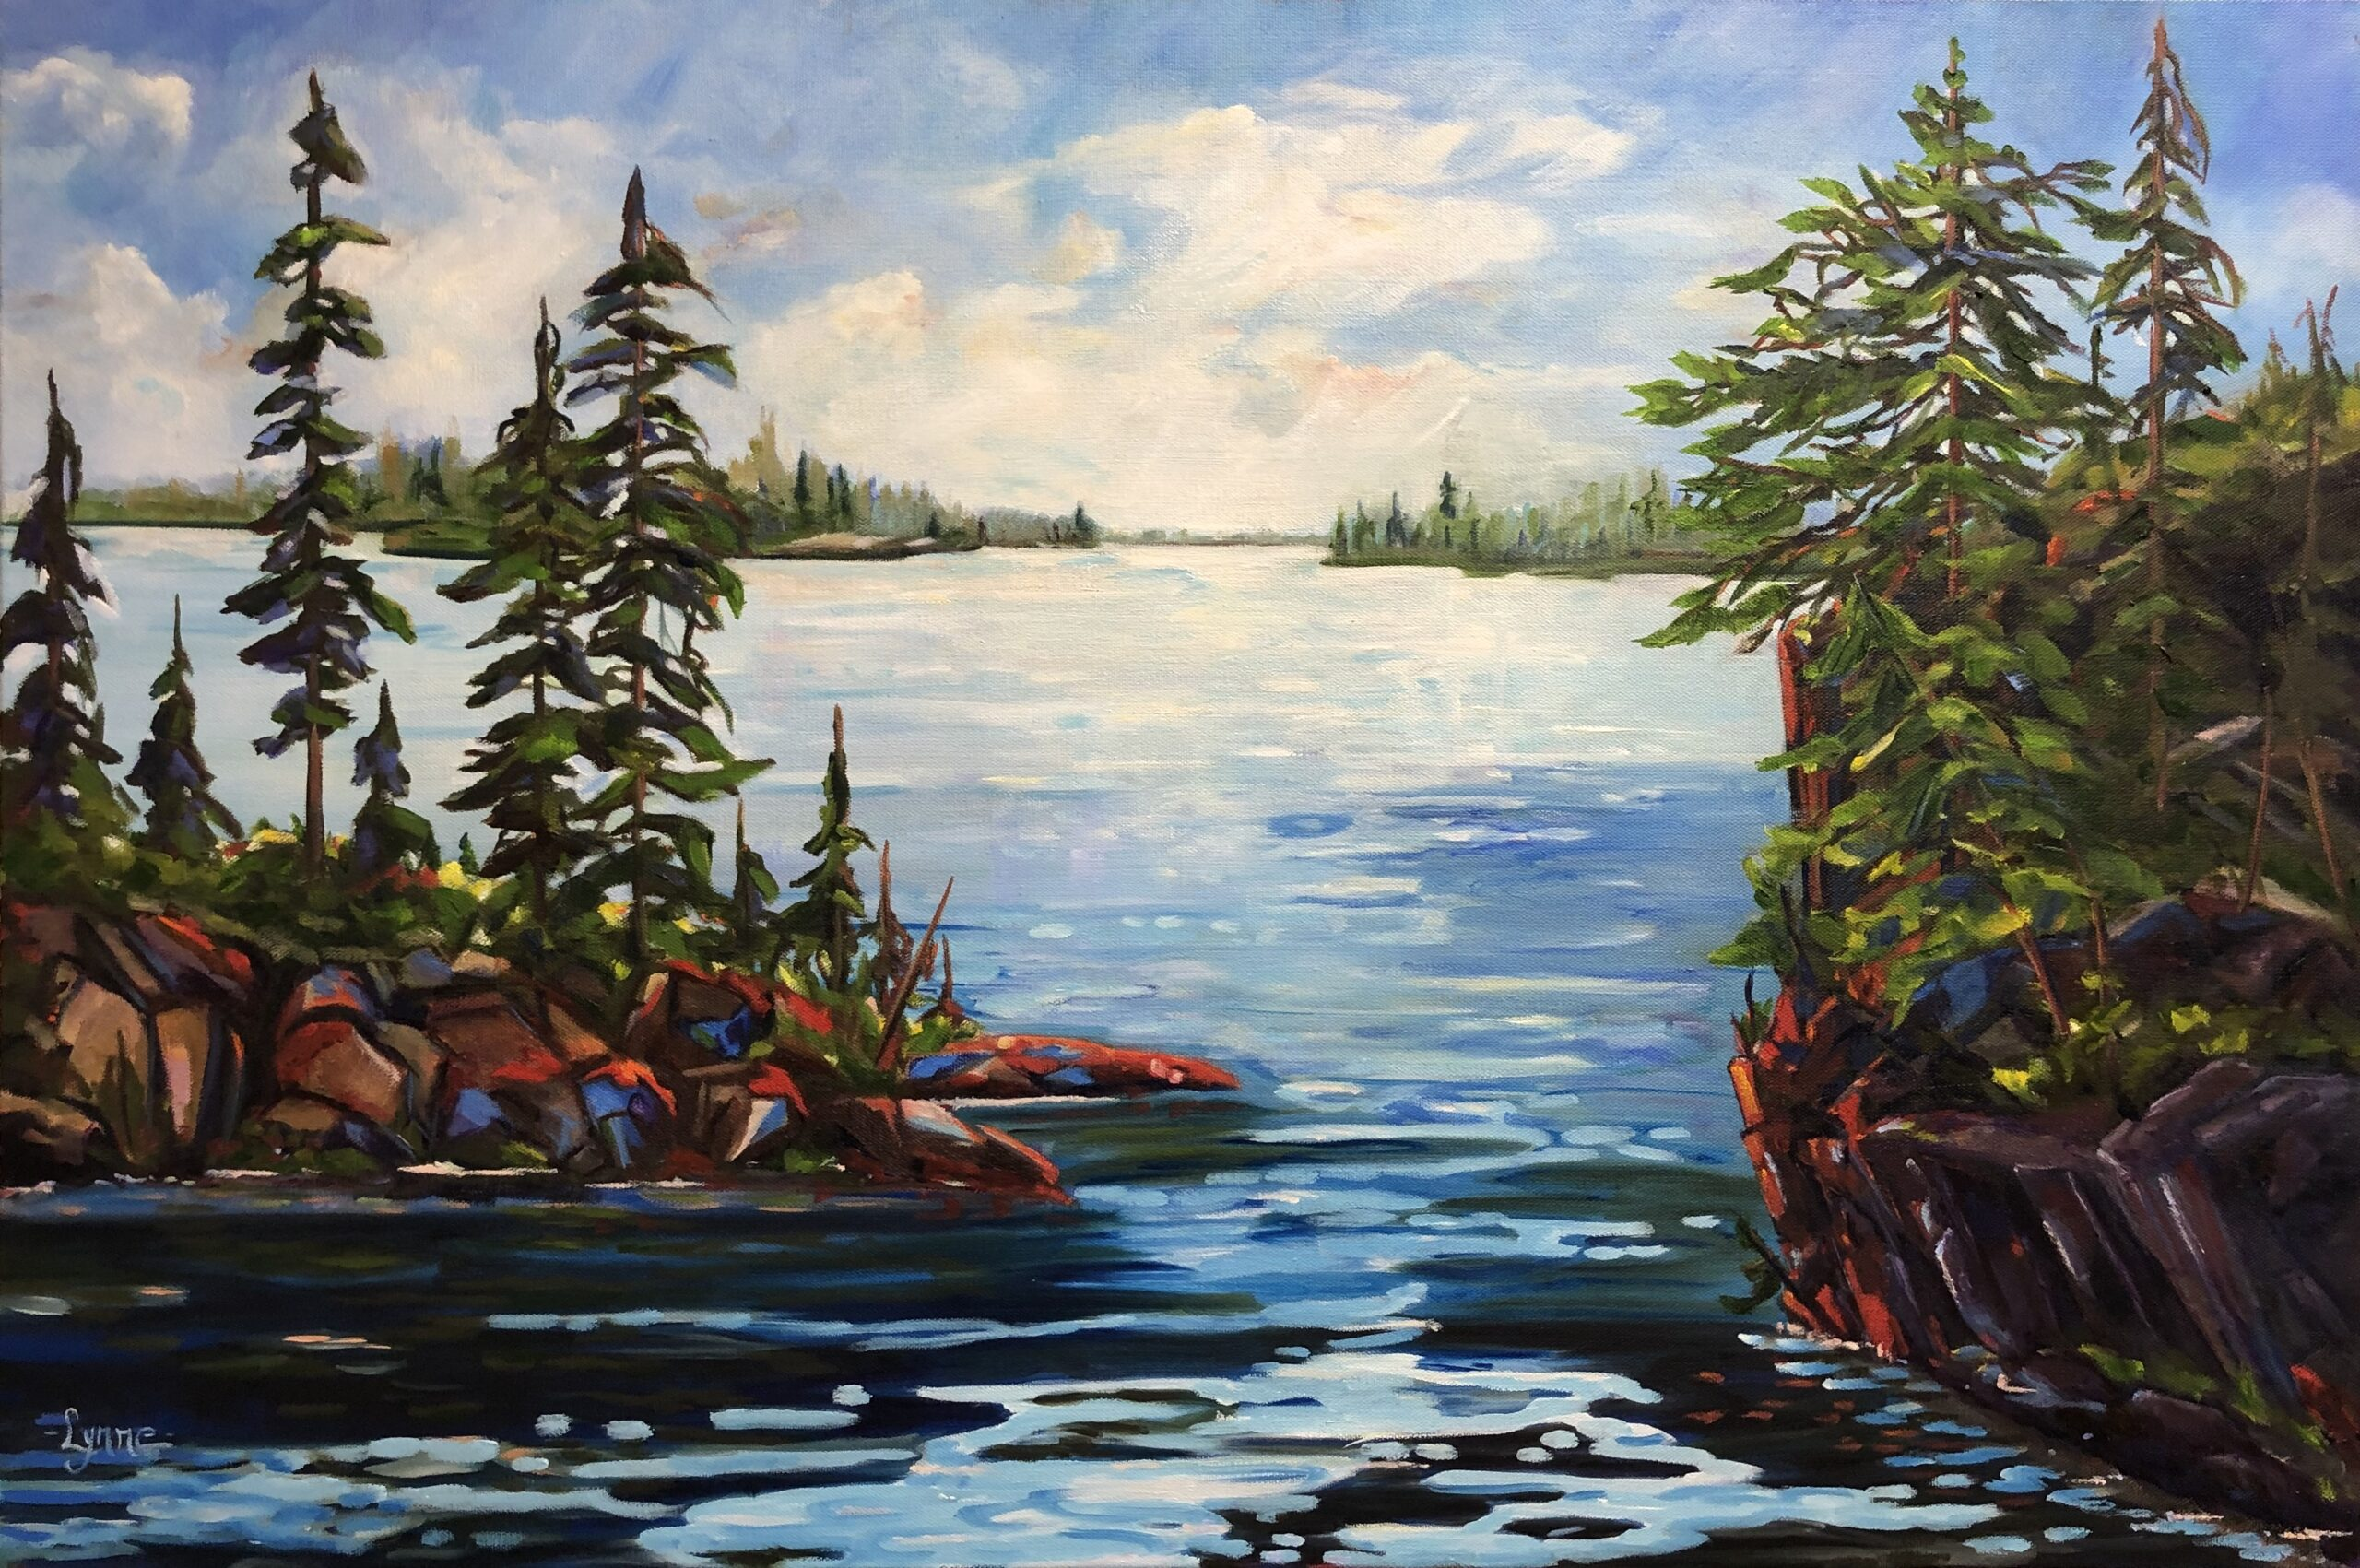 Painting of the Muskokas by Lynne Rempel.